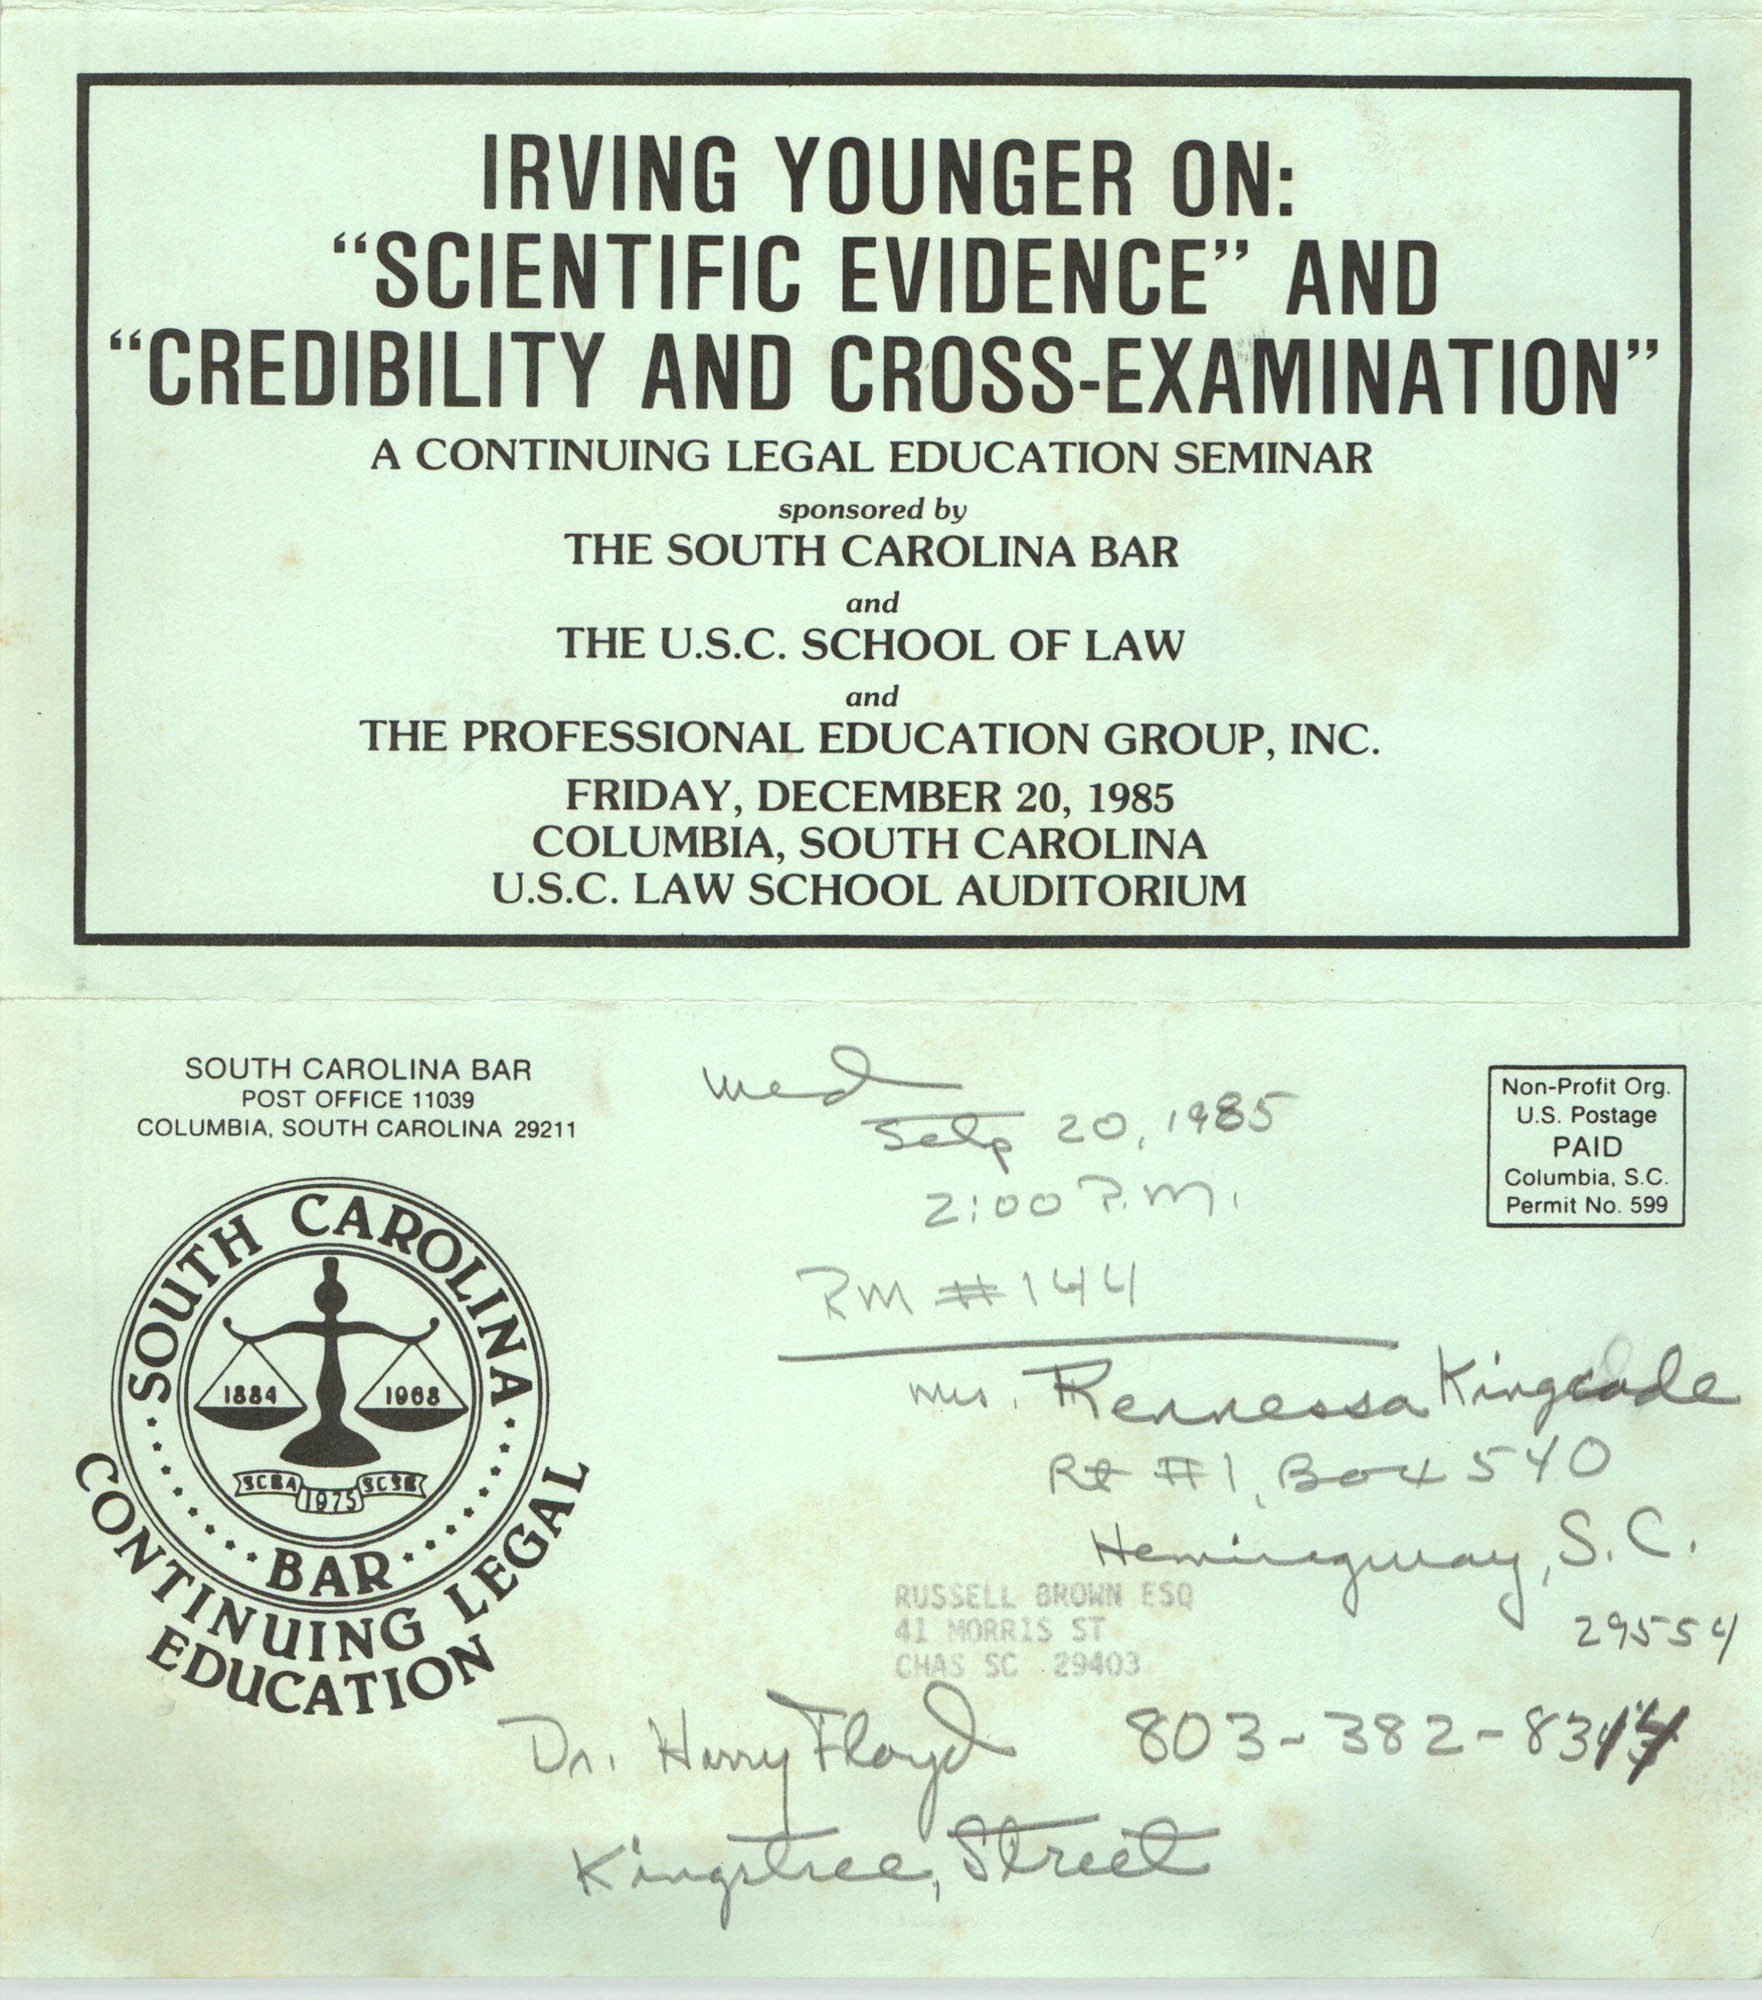 Irving Younger on